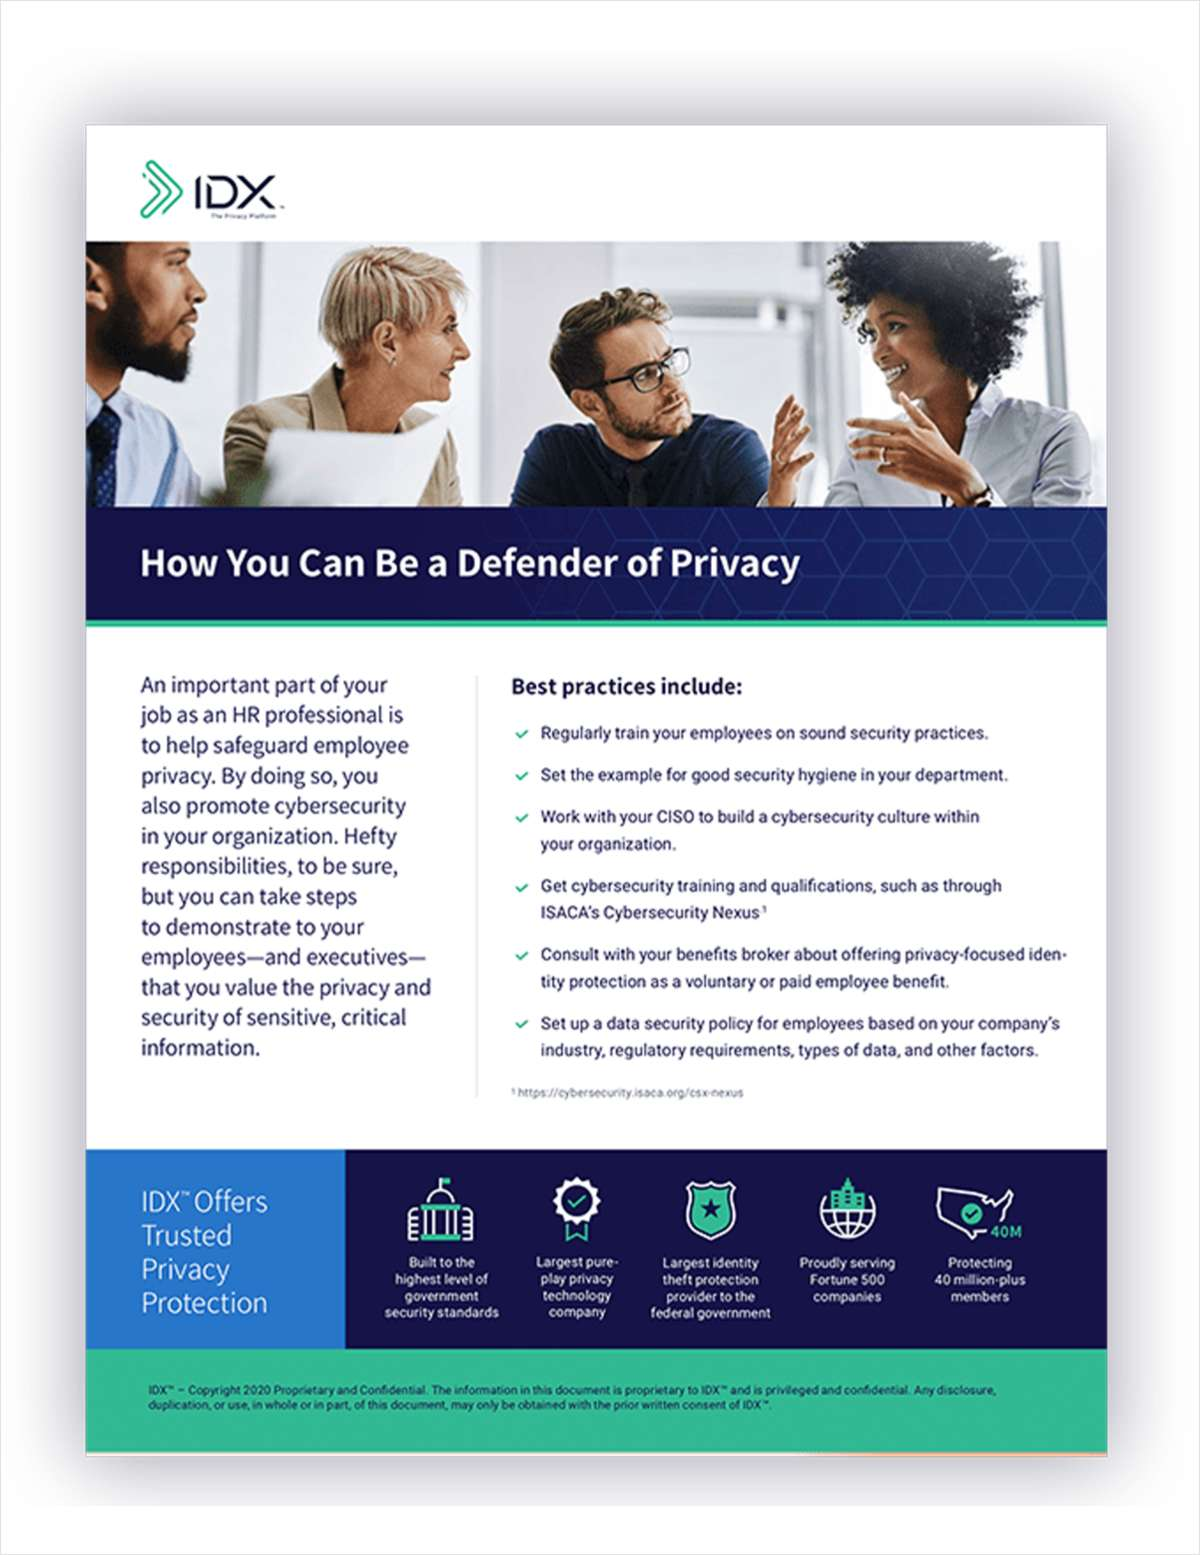 [Checklist] How HR Can Be a Defender of Privacy